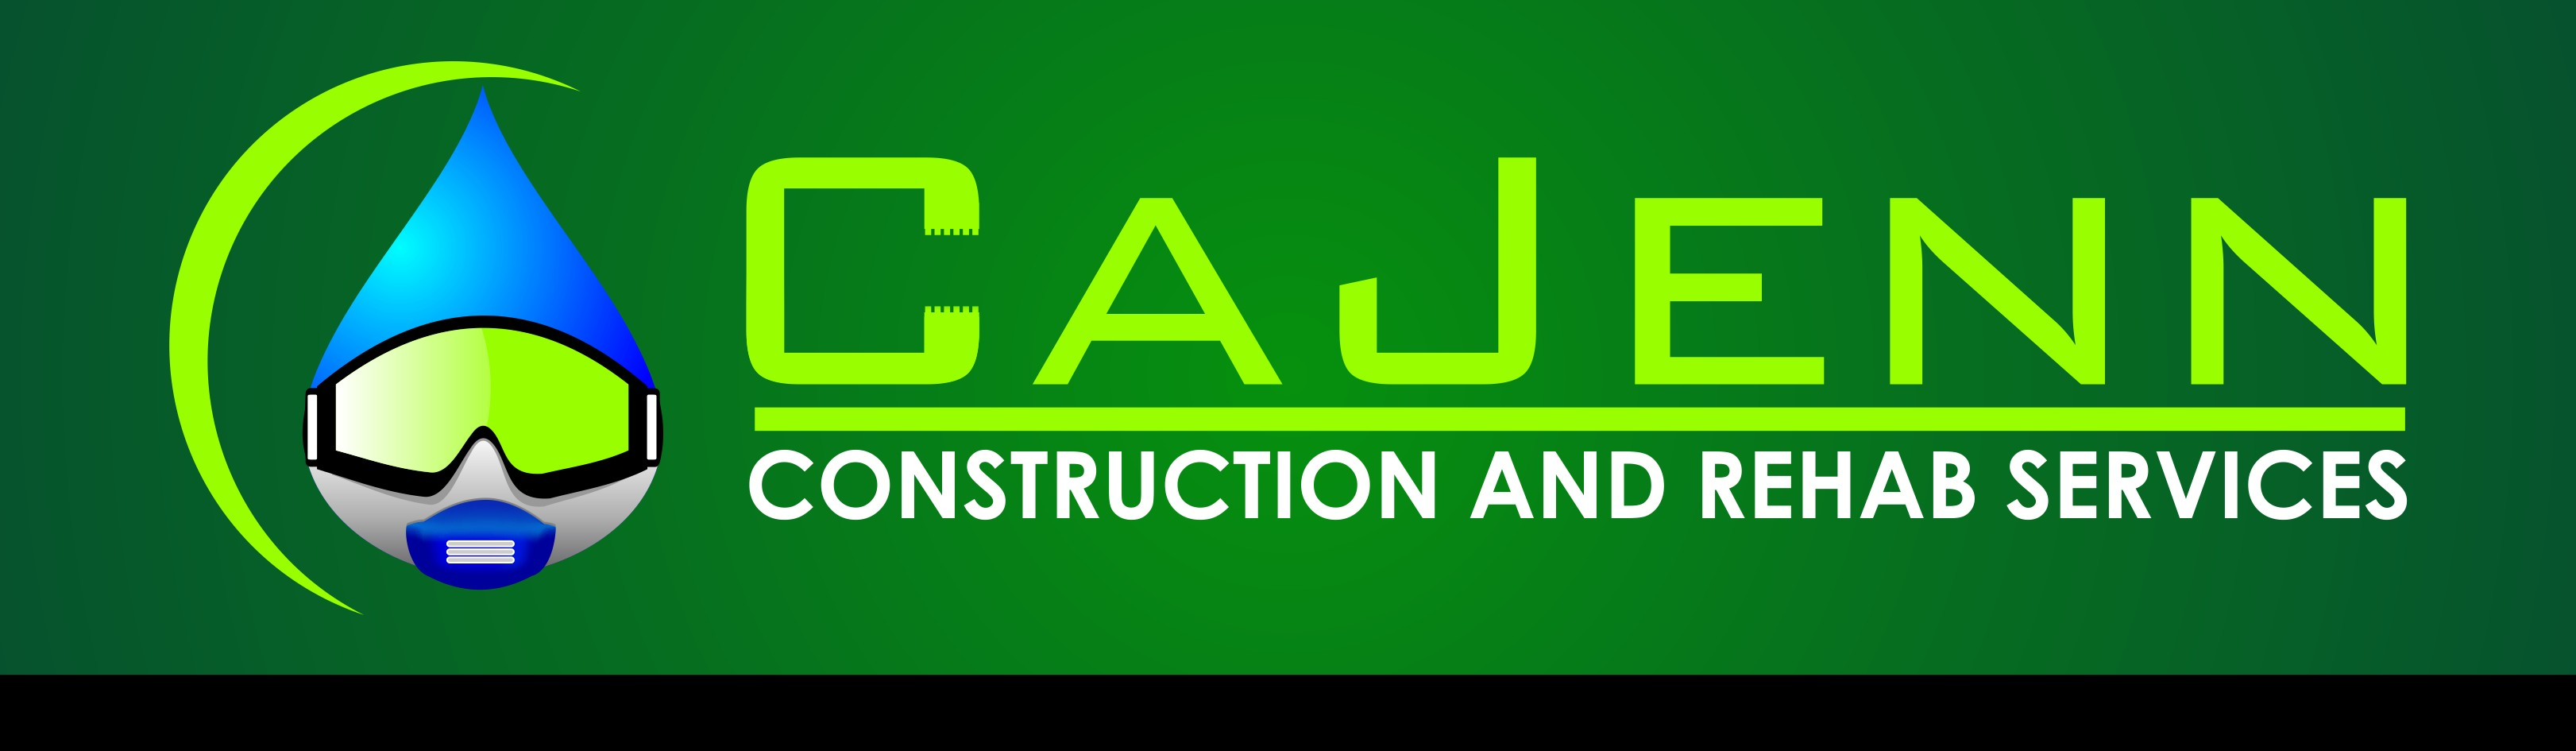 Logo Design by Crispin Jr Vasquez - Entry No. 202 in the Logo Design Contest New Logo Design for CaJenn Construction & Rehab Services.